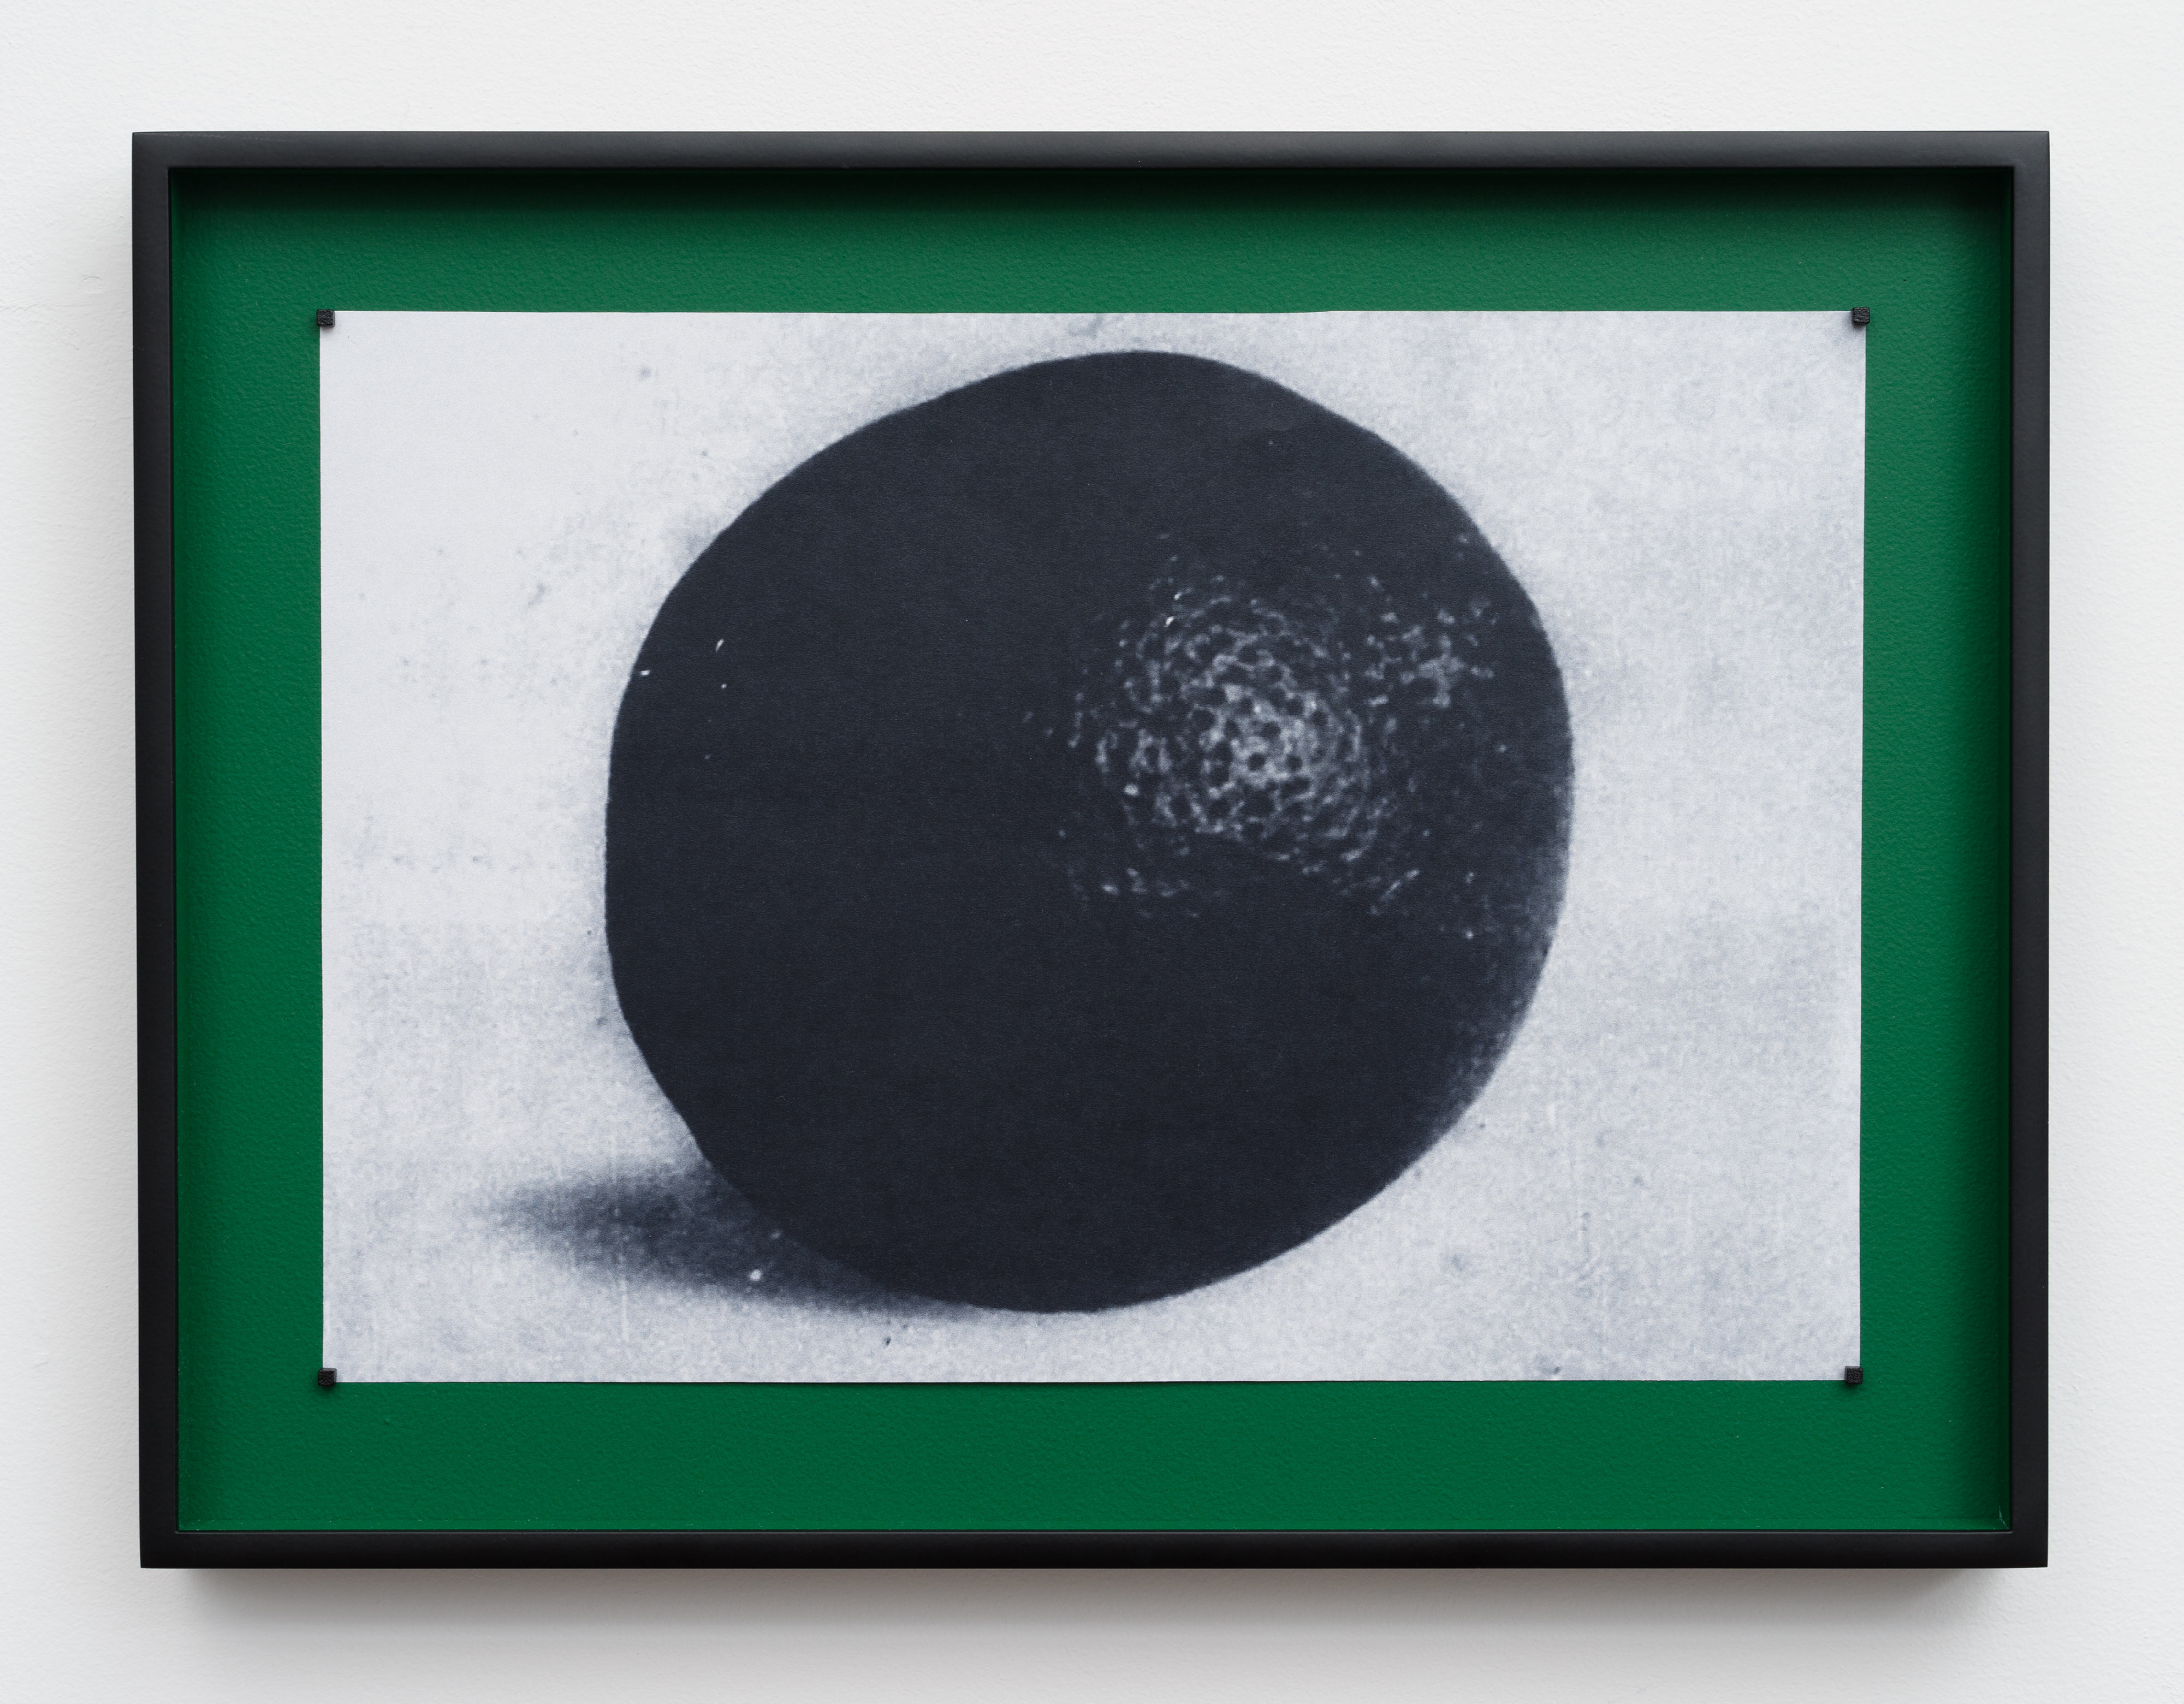 Gideon Barnett, Picture of an orange on blue cloth, 2017